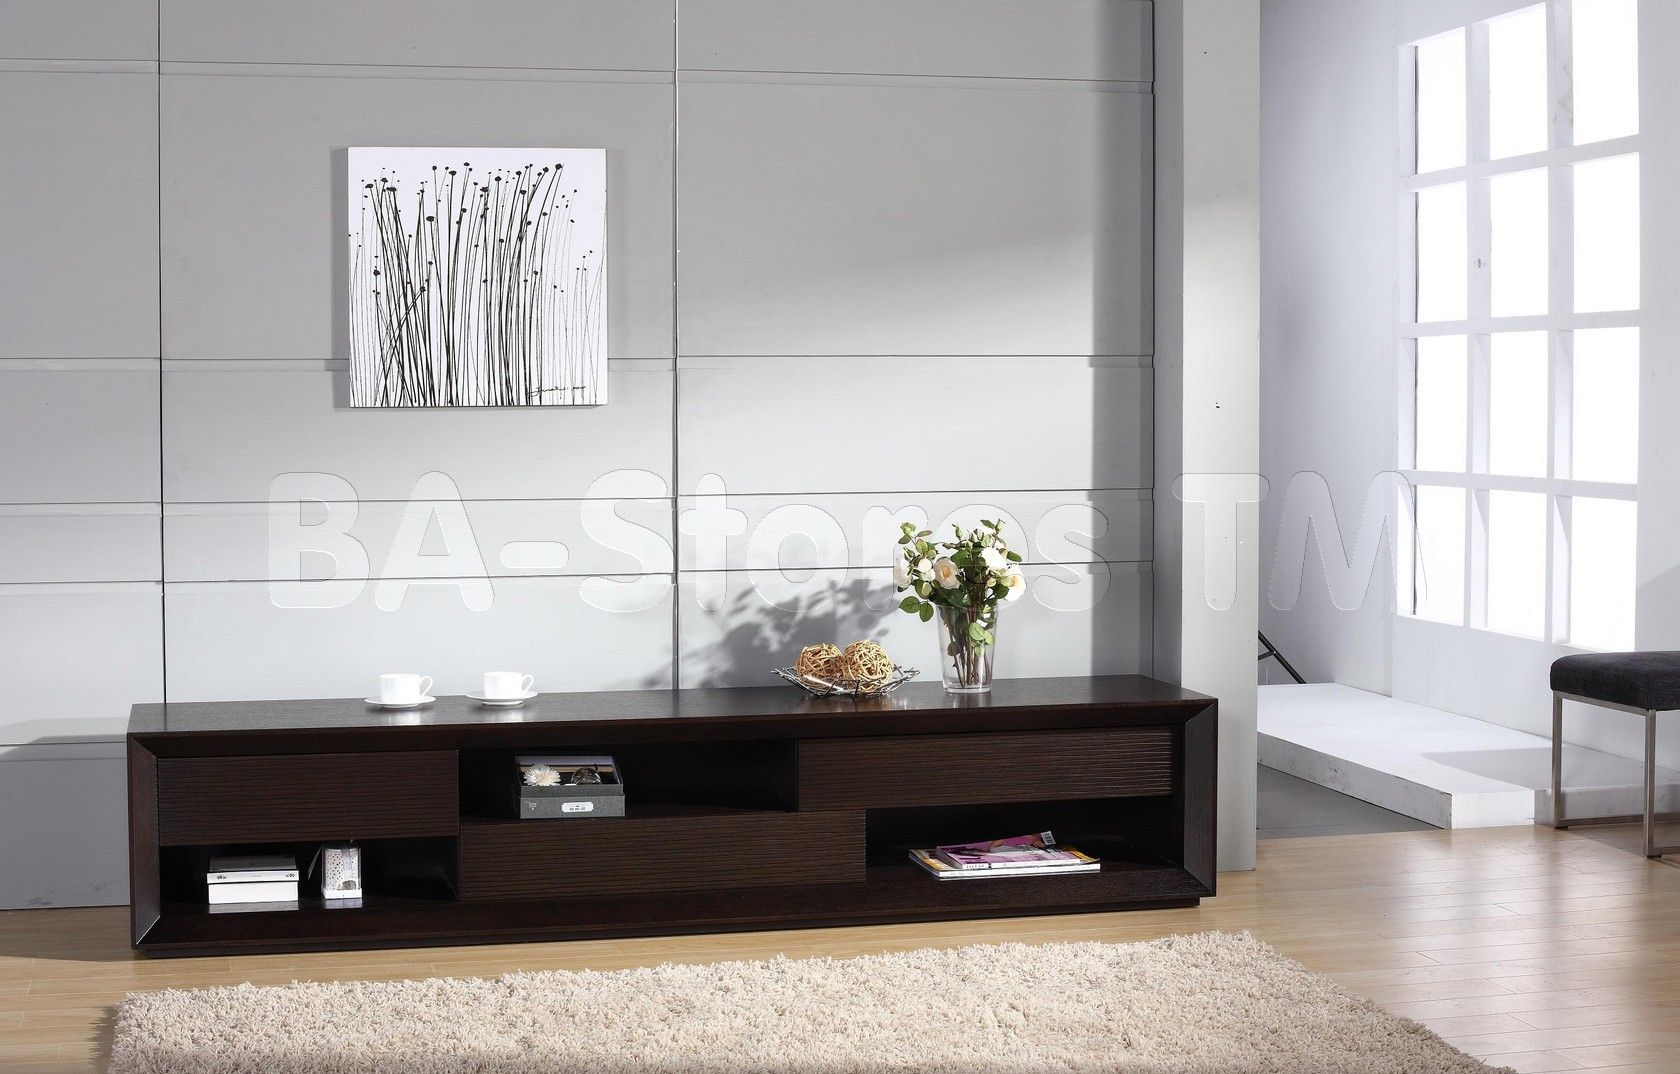 modern tv stands  google search  for the homedream home  - modern tv stands  google search